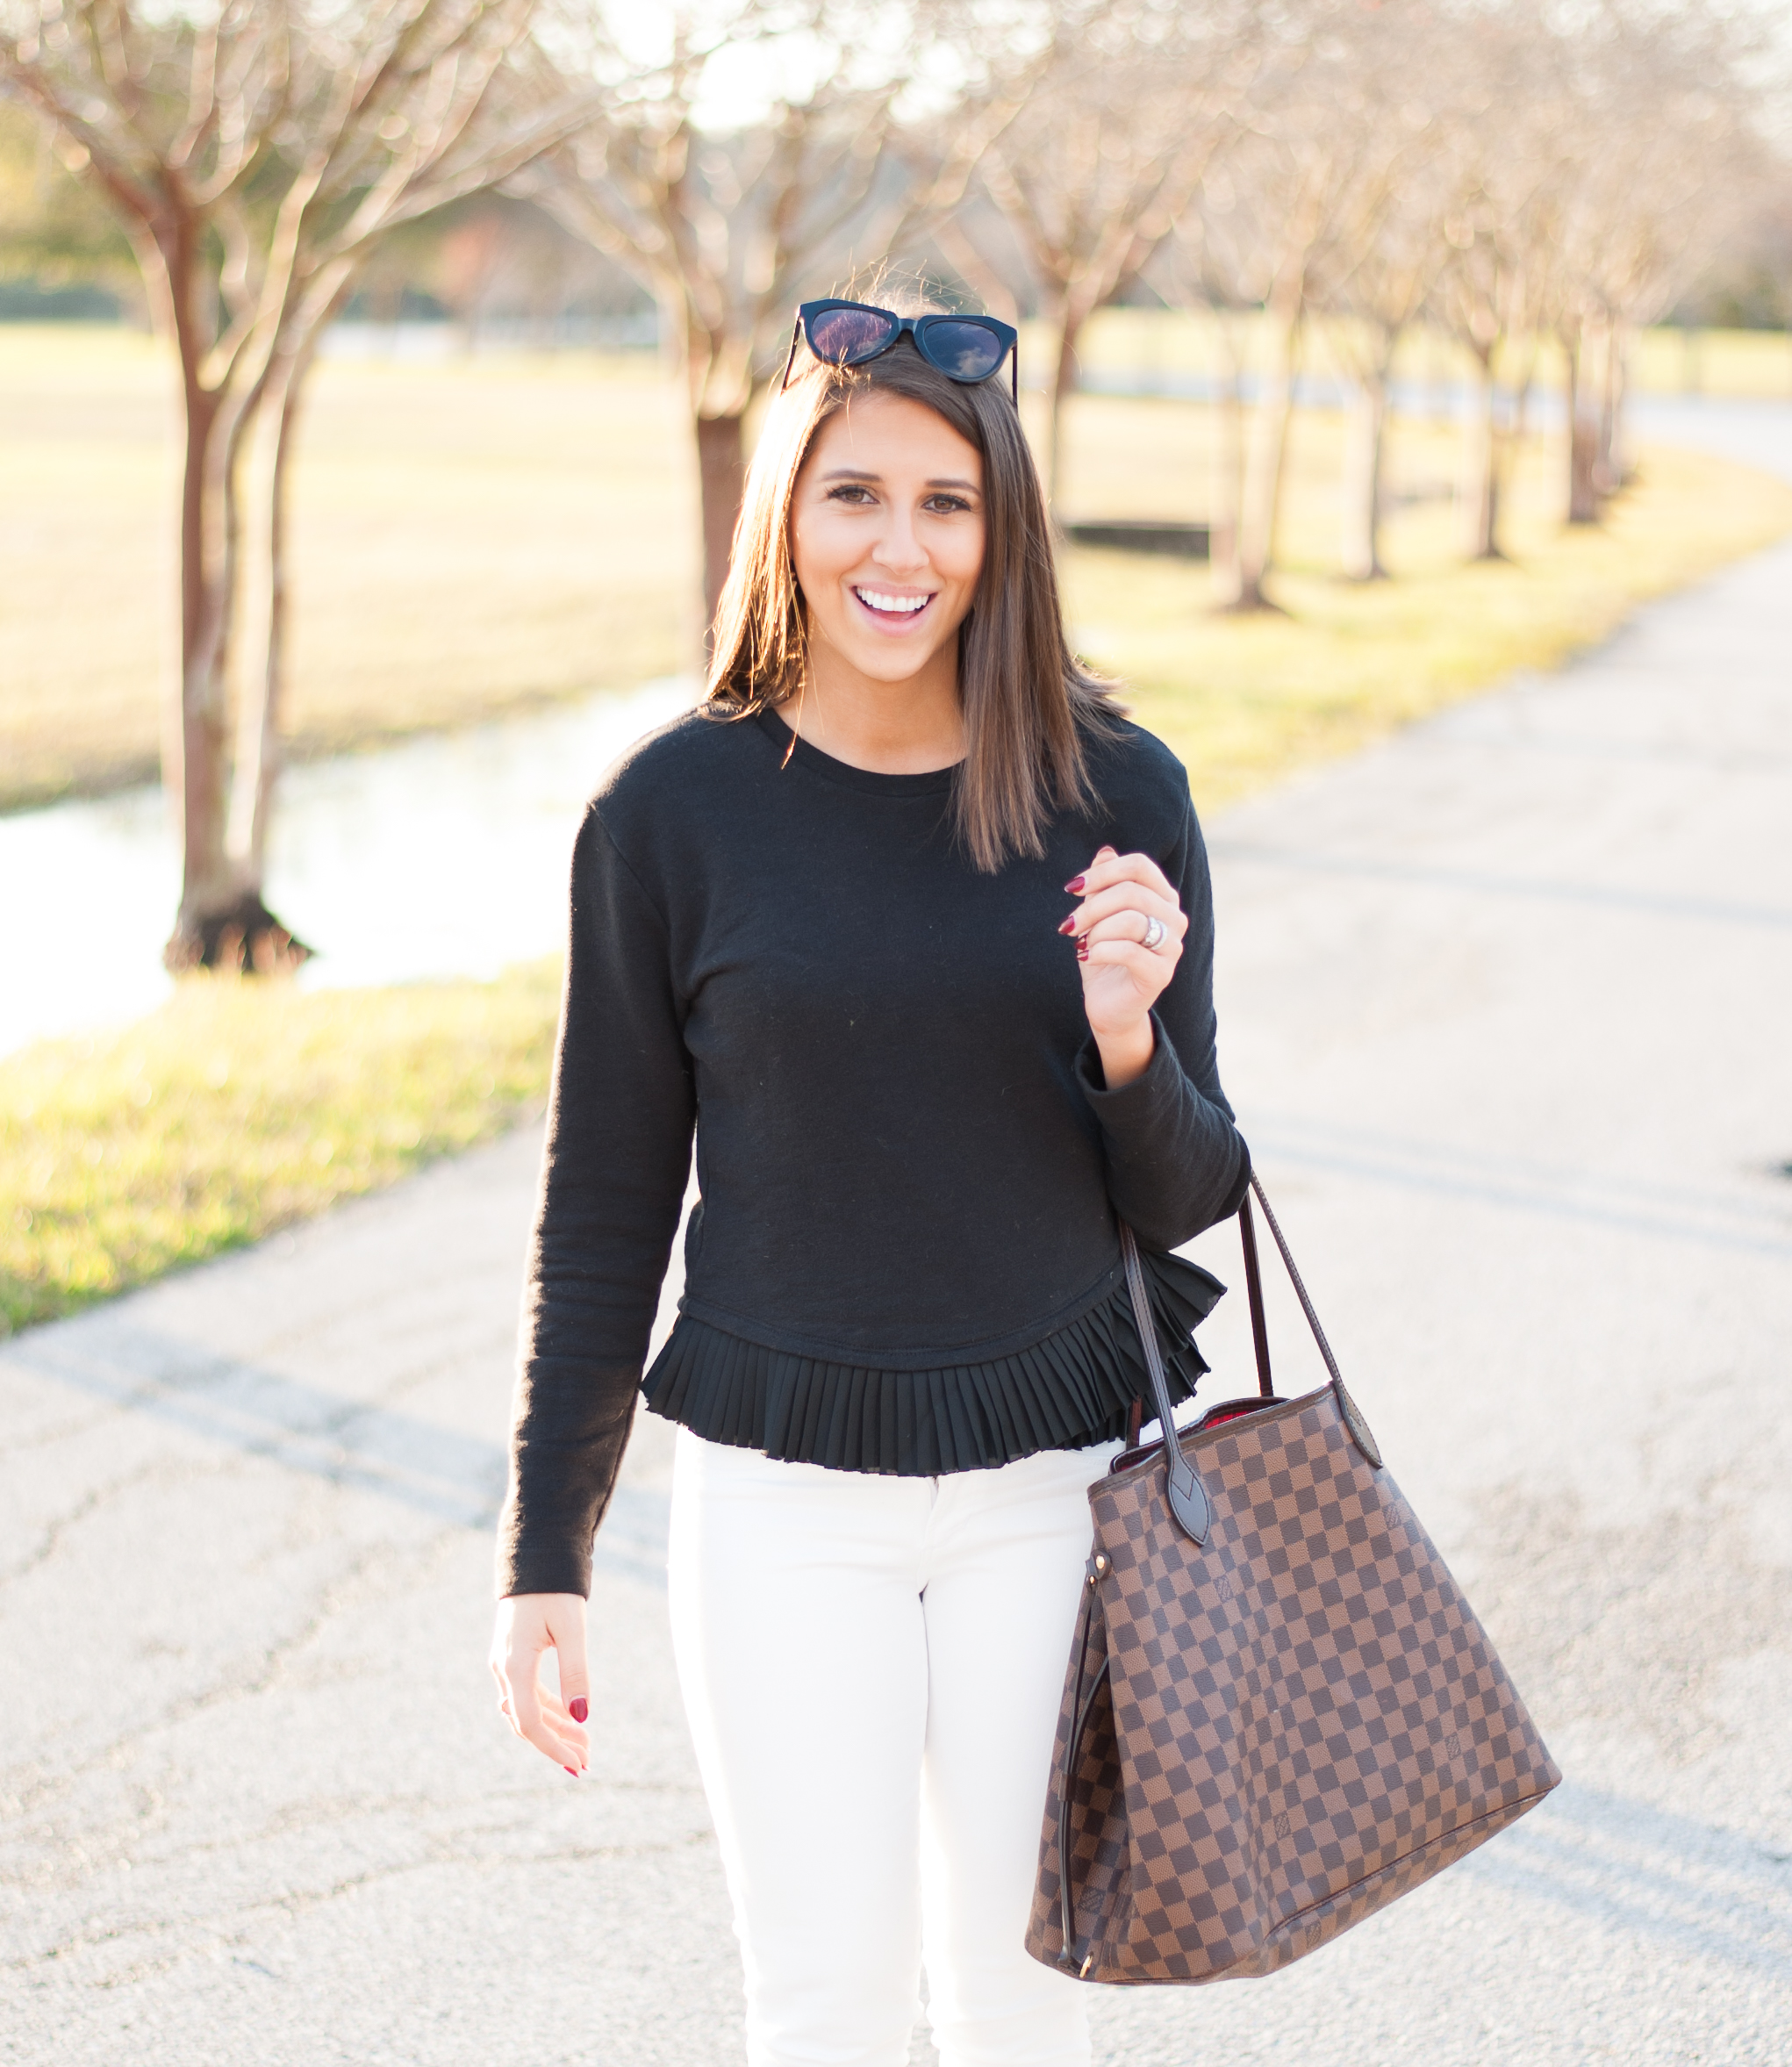 dress_up_buttercup_dede_raad_fashion_blogger_houston (1 of 8)